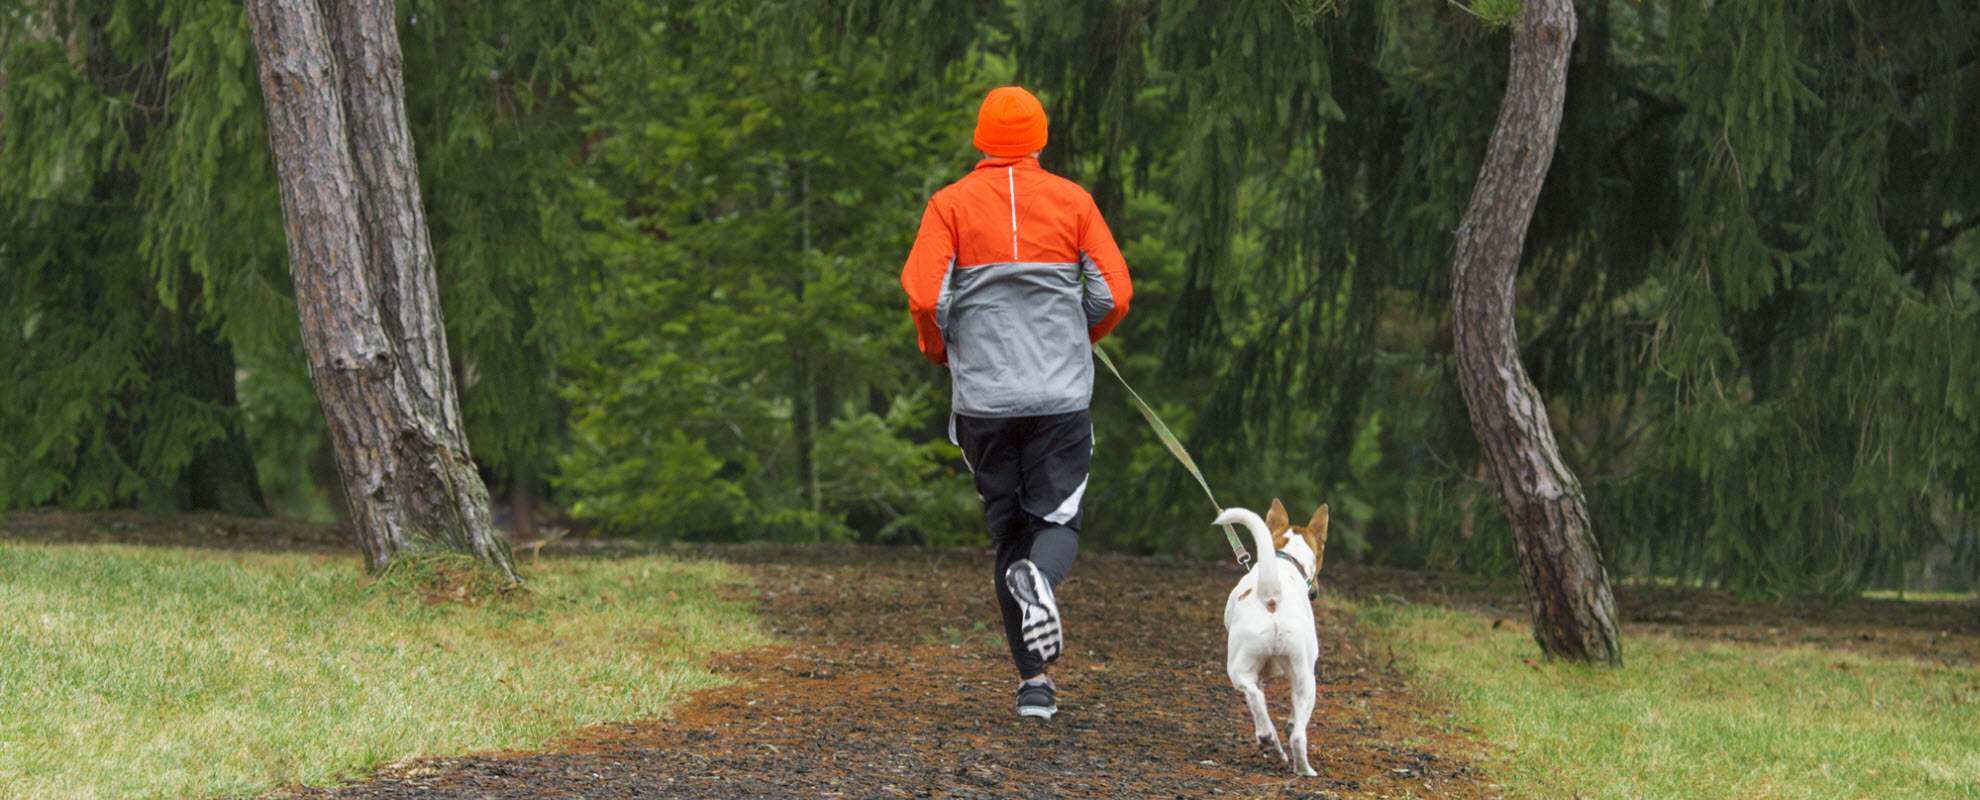 background of person running with dog